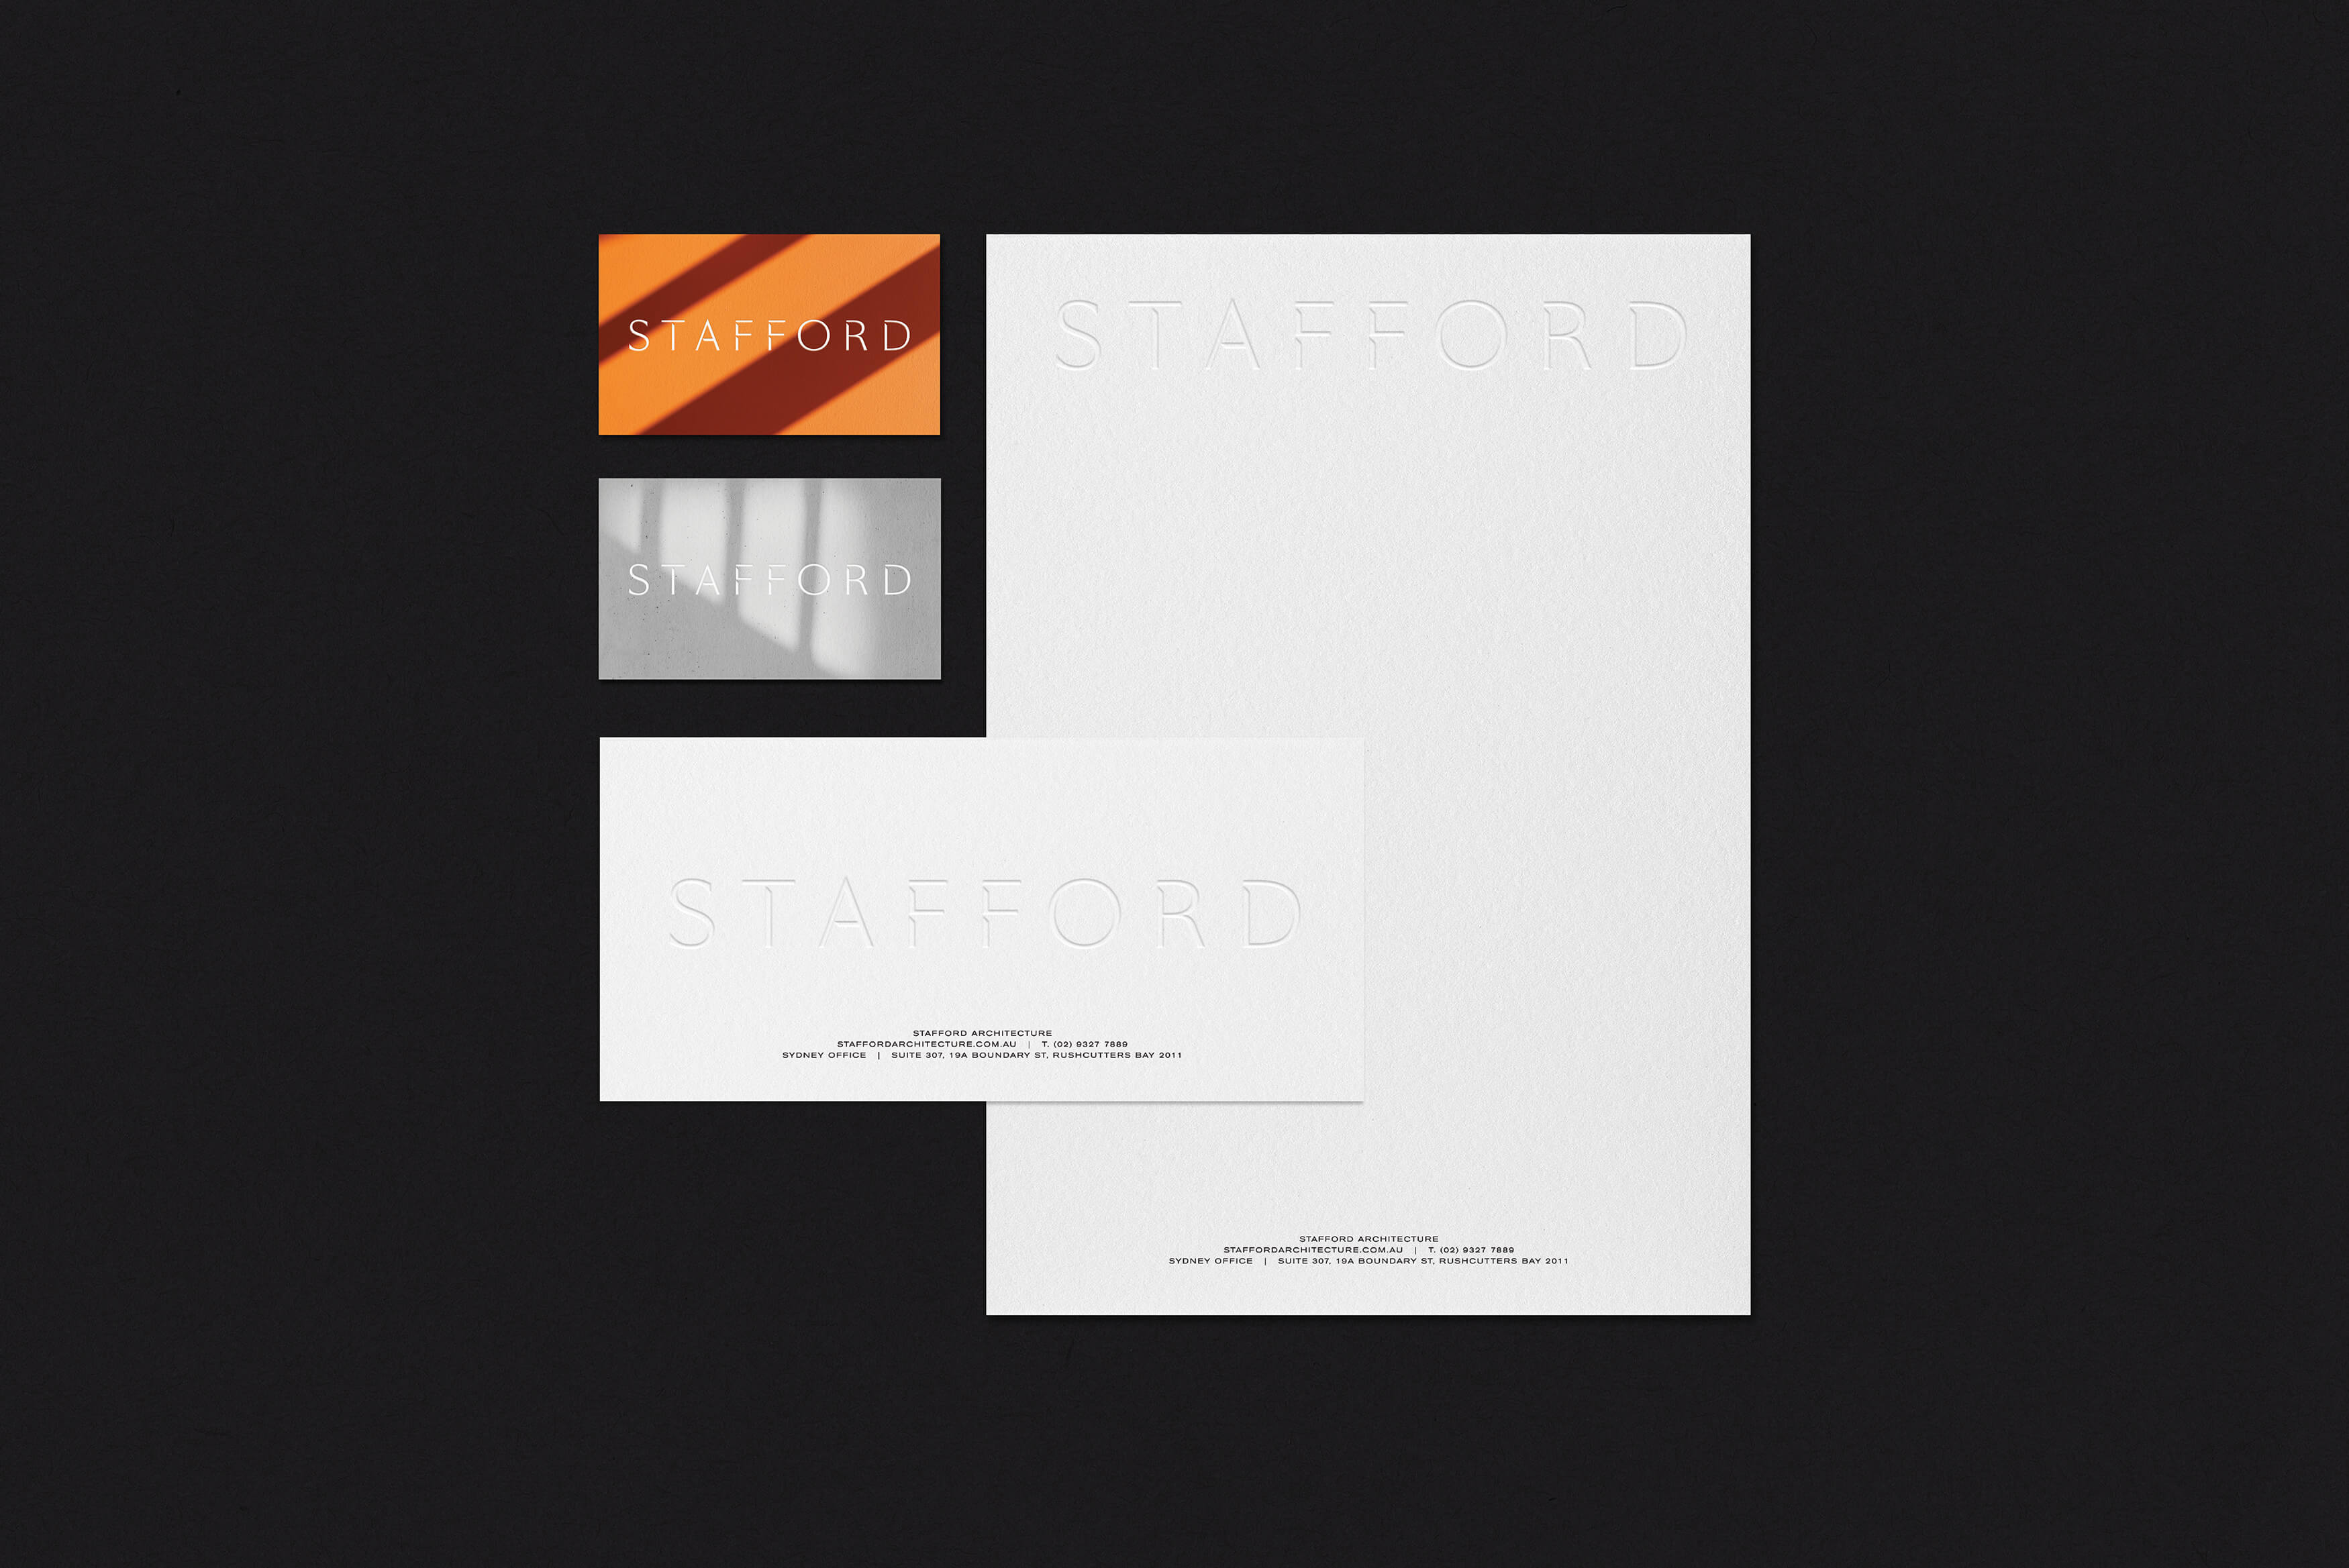 Stafford Architecture - Stationery suite